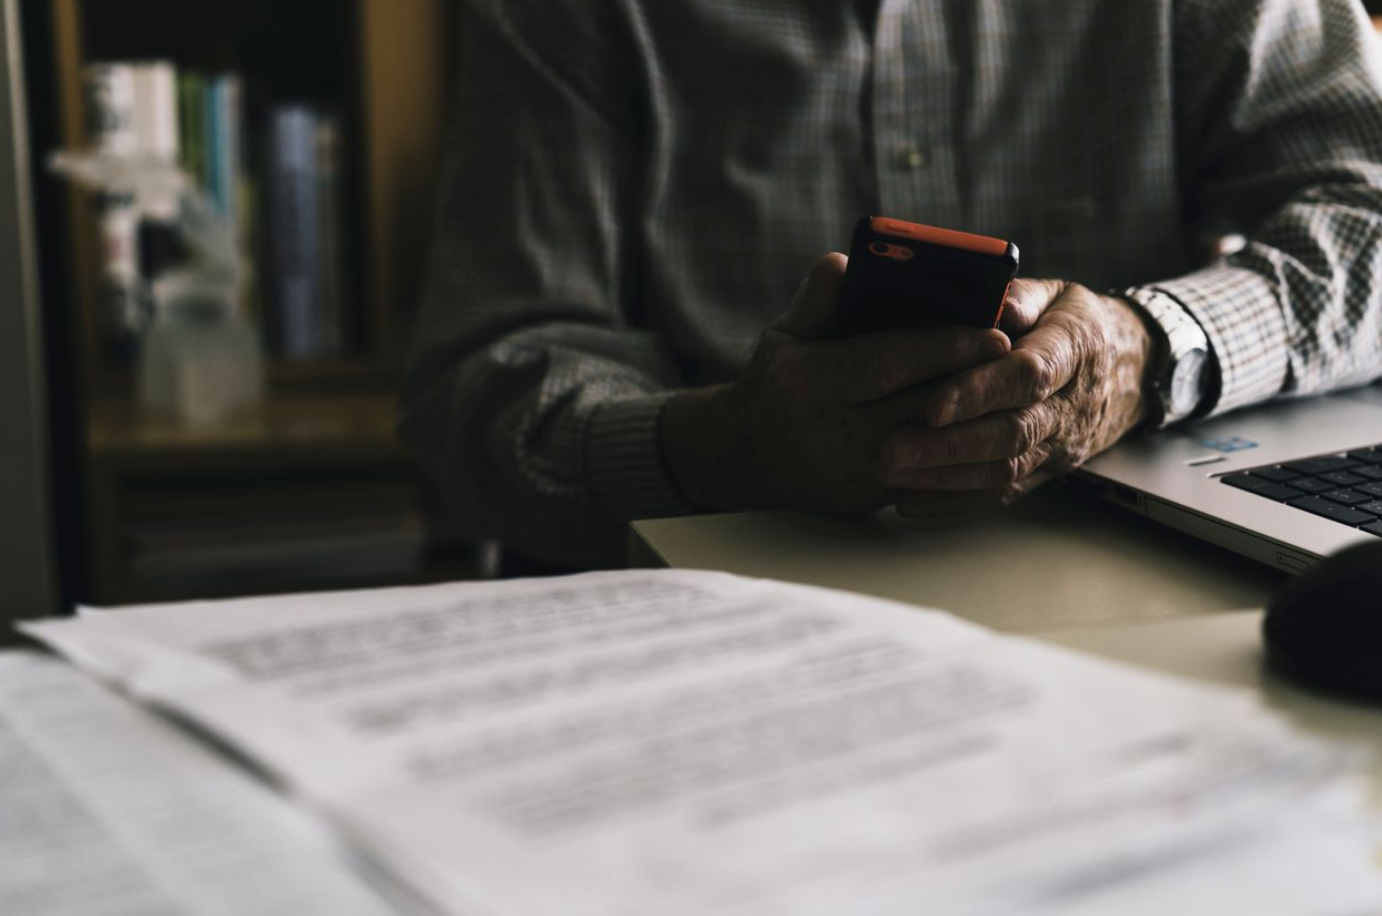 After He Fell For A $40K Phone Scam, His Bank Offered To Help—If He Stayed Quiet (#GotBitcoin?)